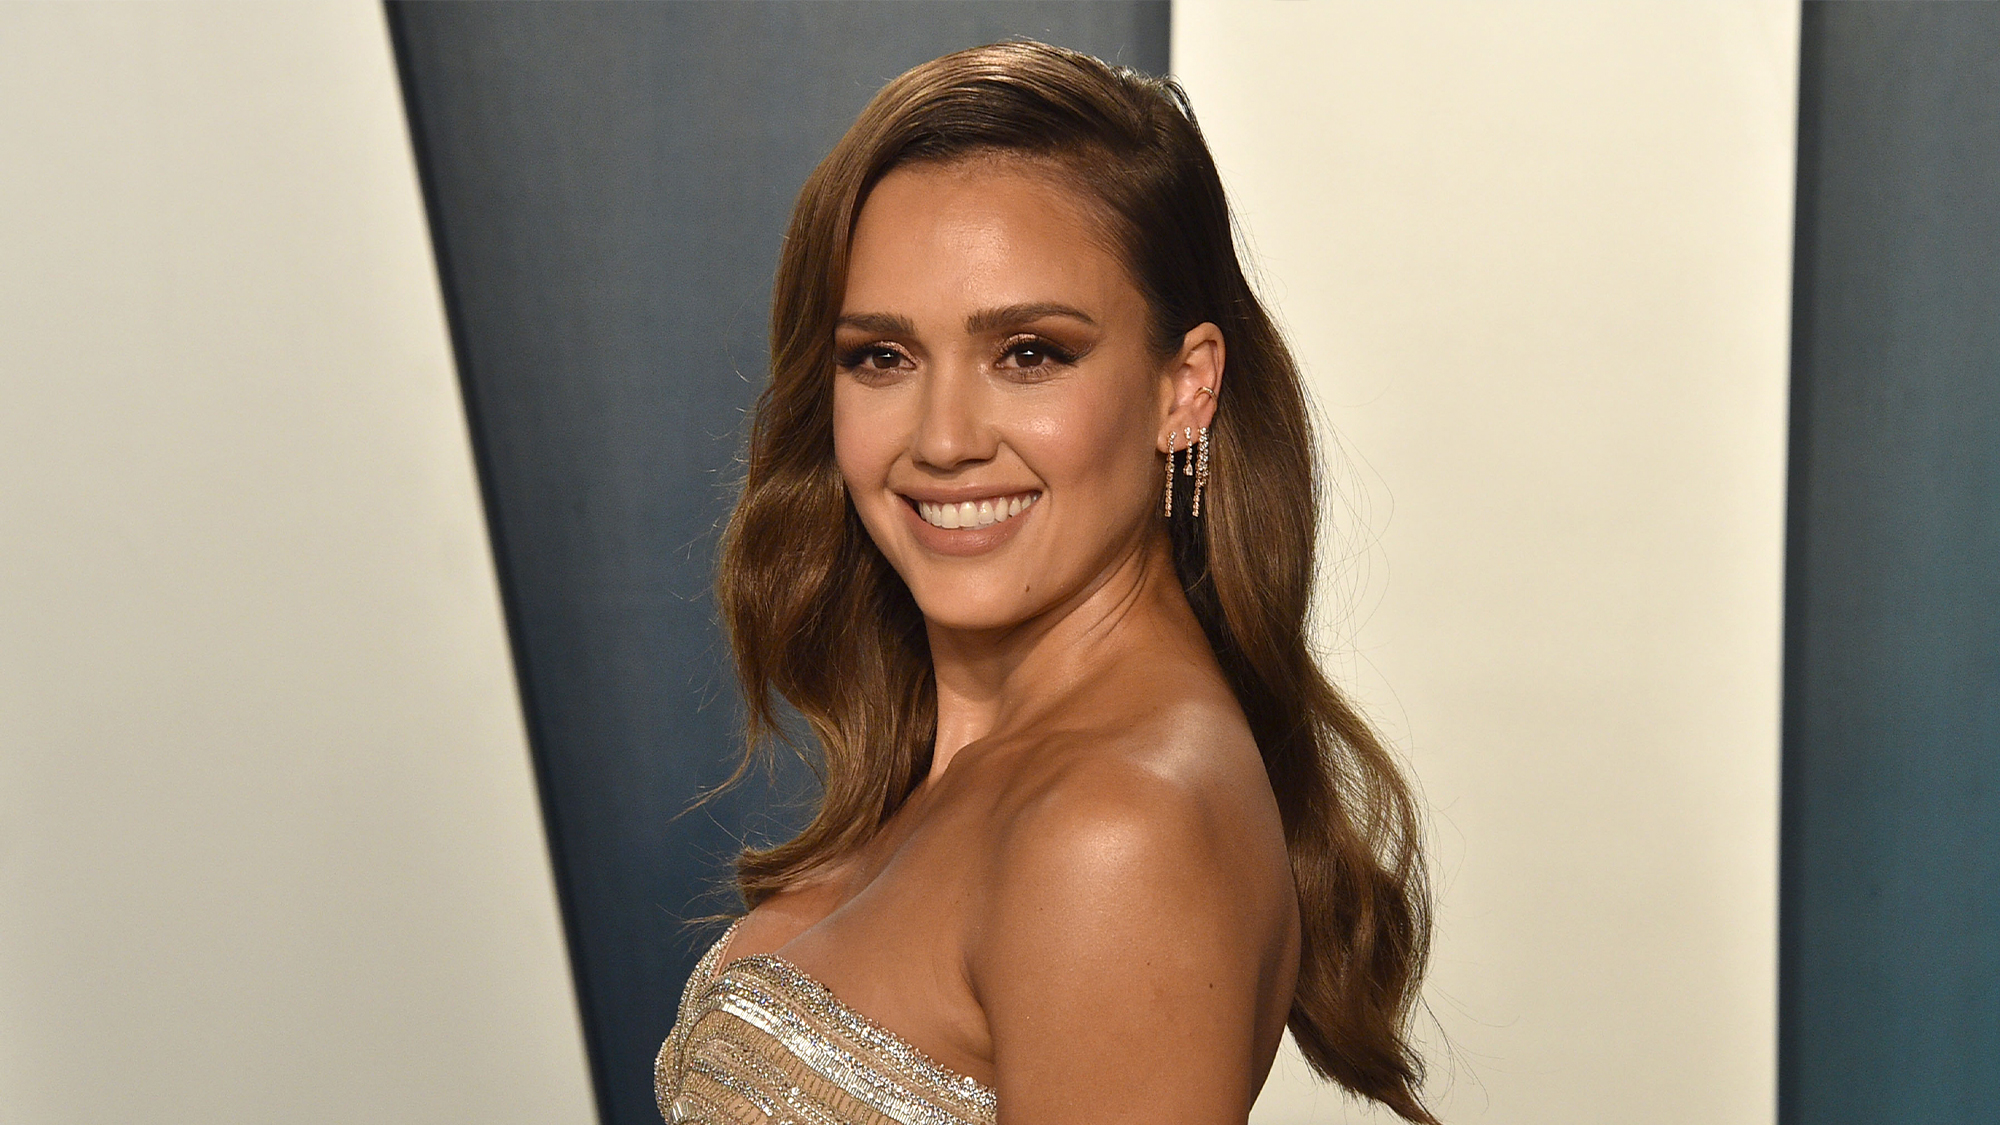 Jessica Alba's 'no make-up' make-up for your next Houseparty